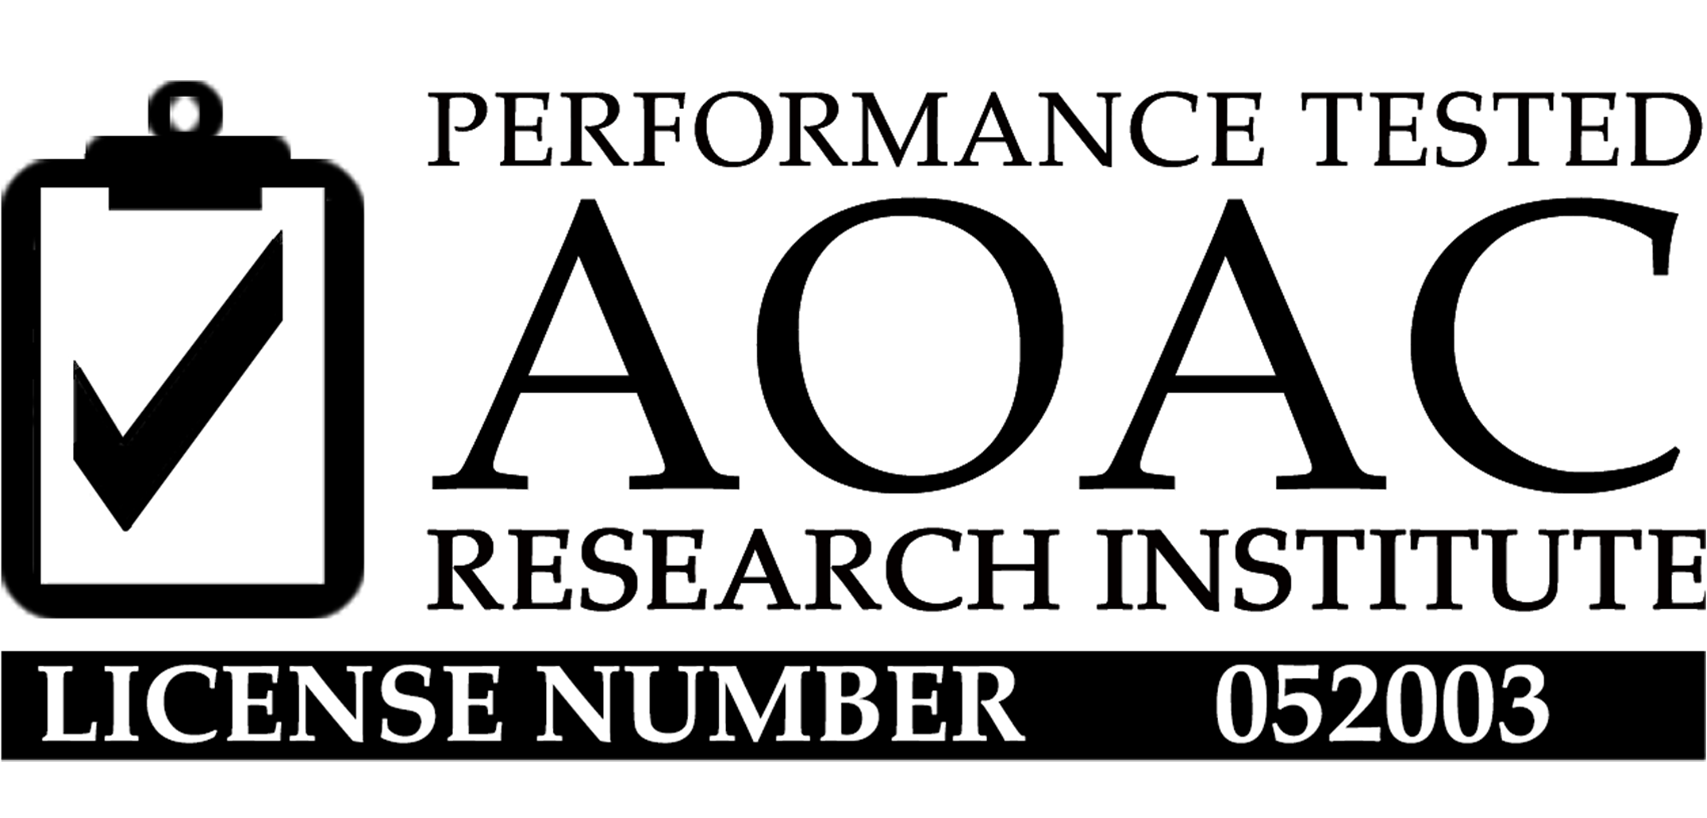 Performance Tested AOAC Research Institute, License Number 052003, Listeria Assay